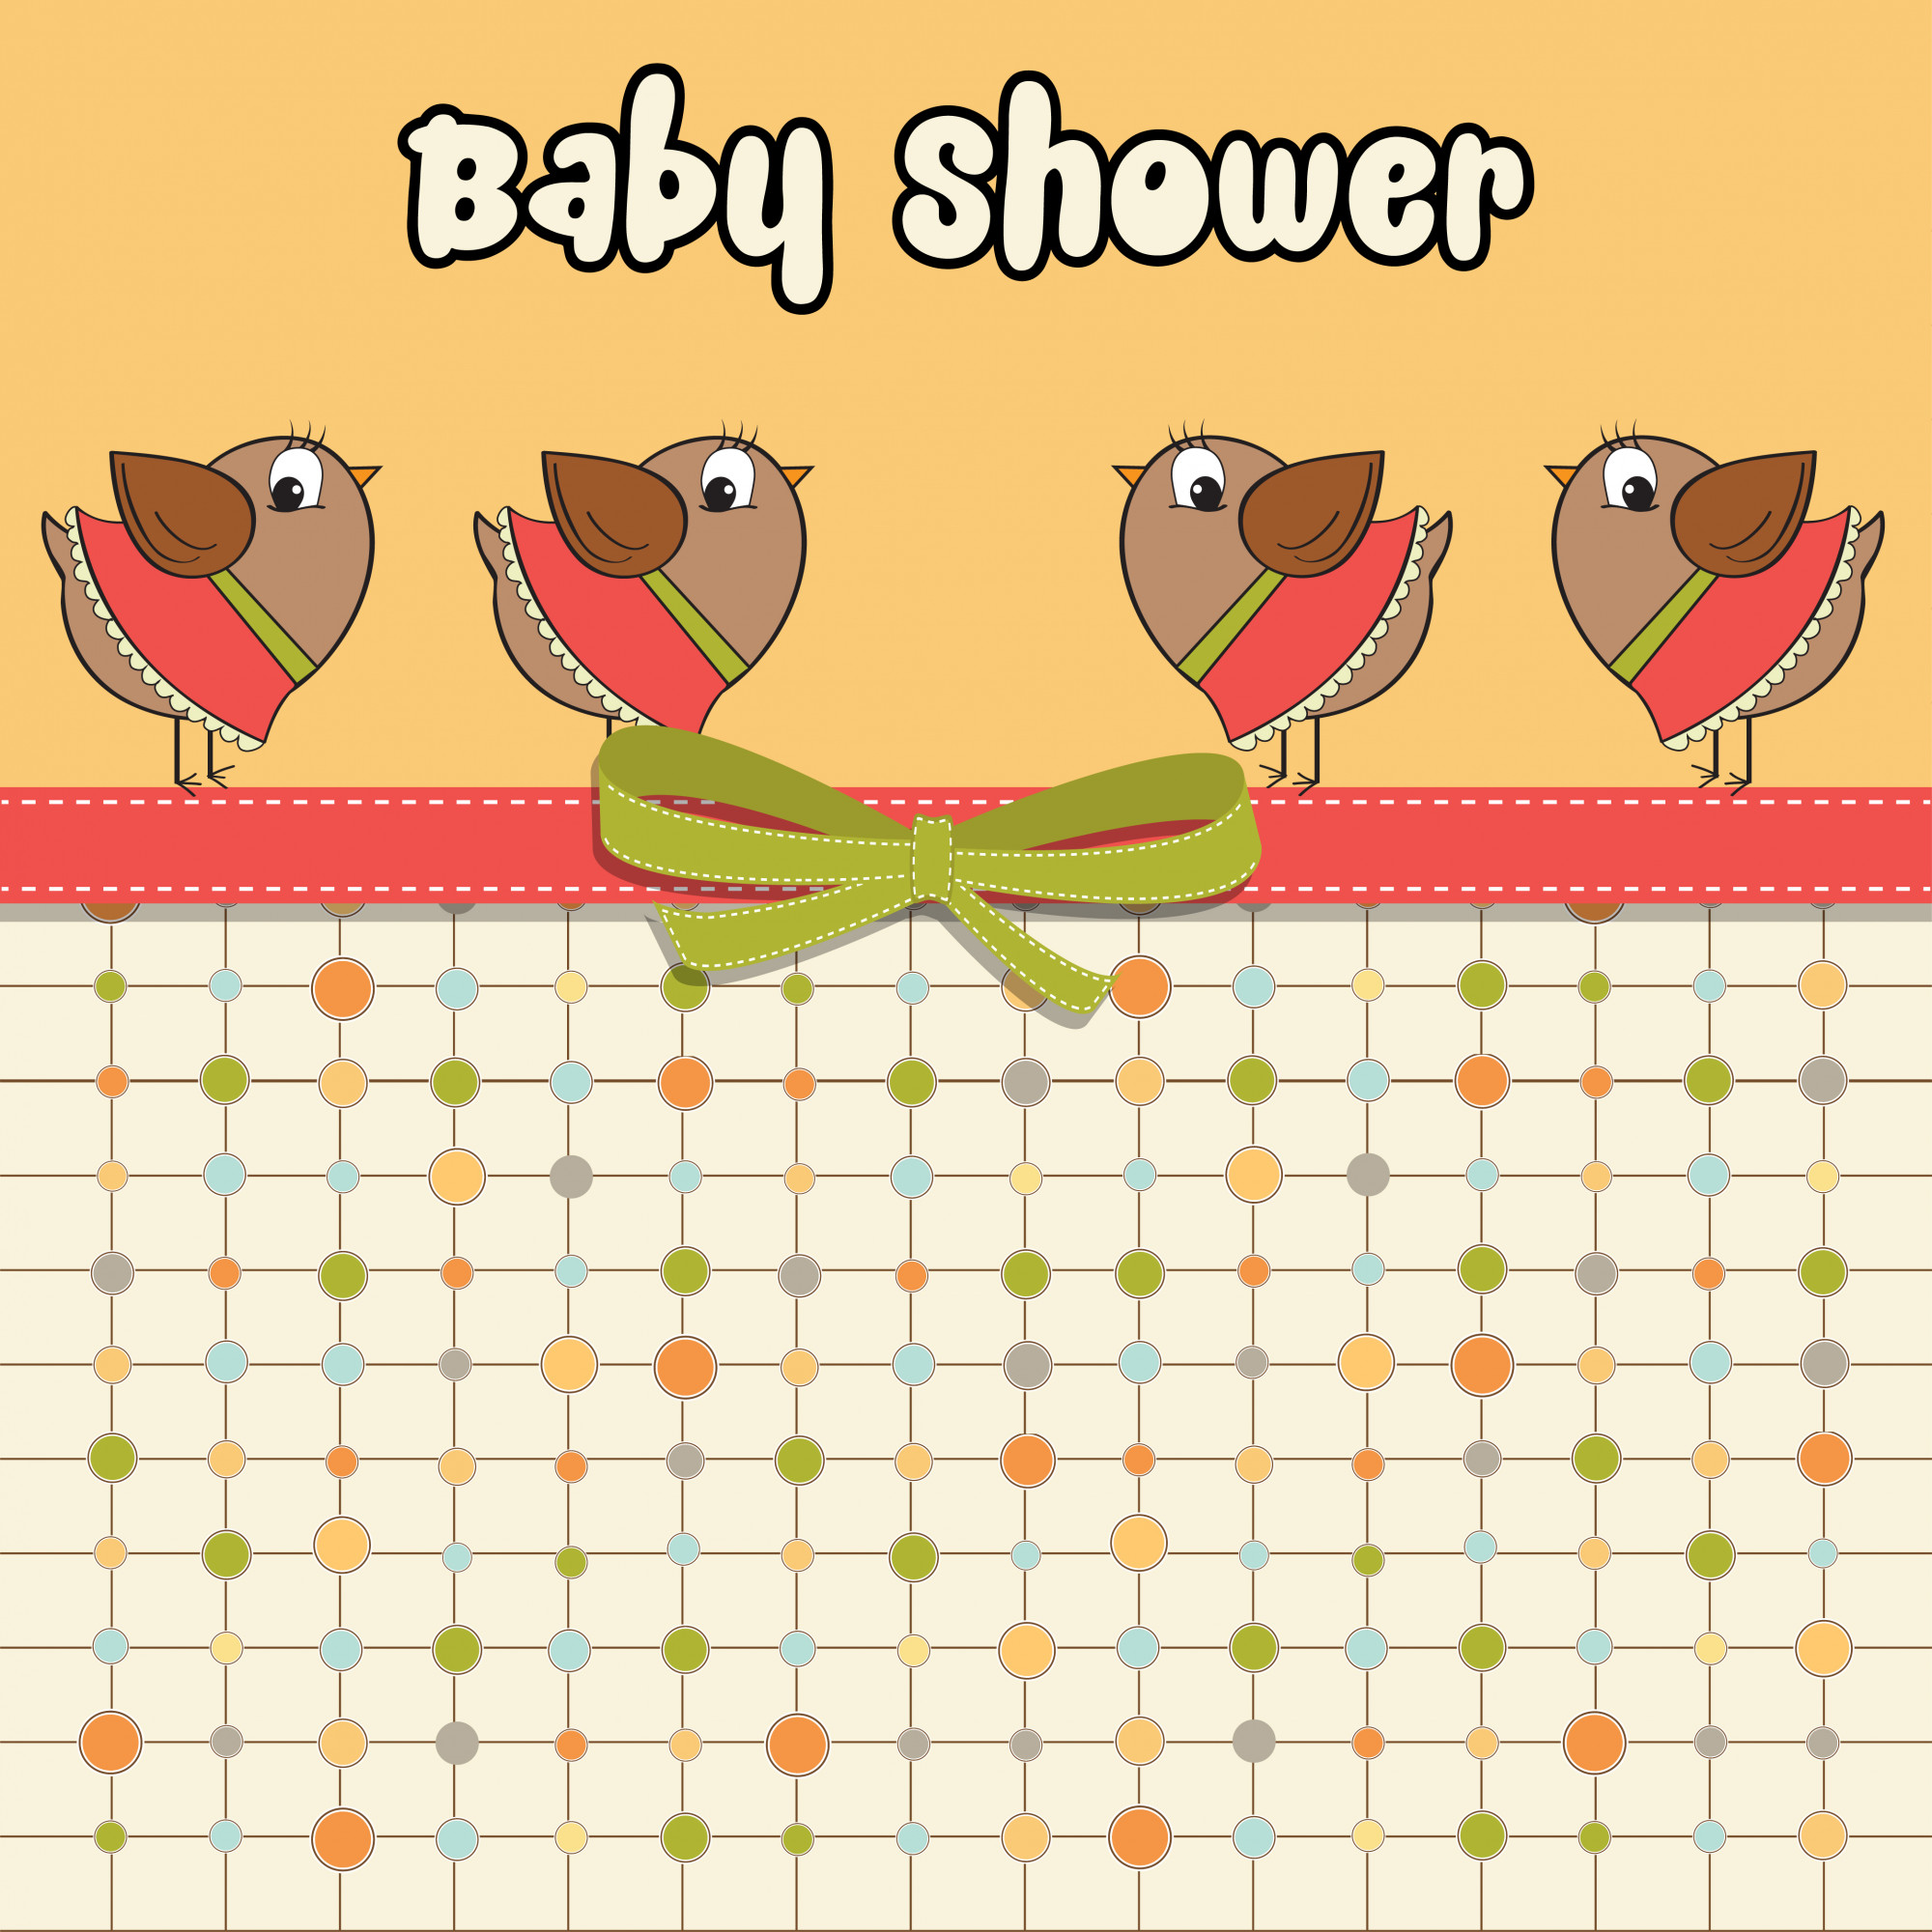 Delicate baby shower card with dressed birds